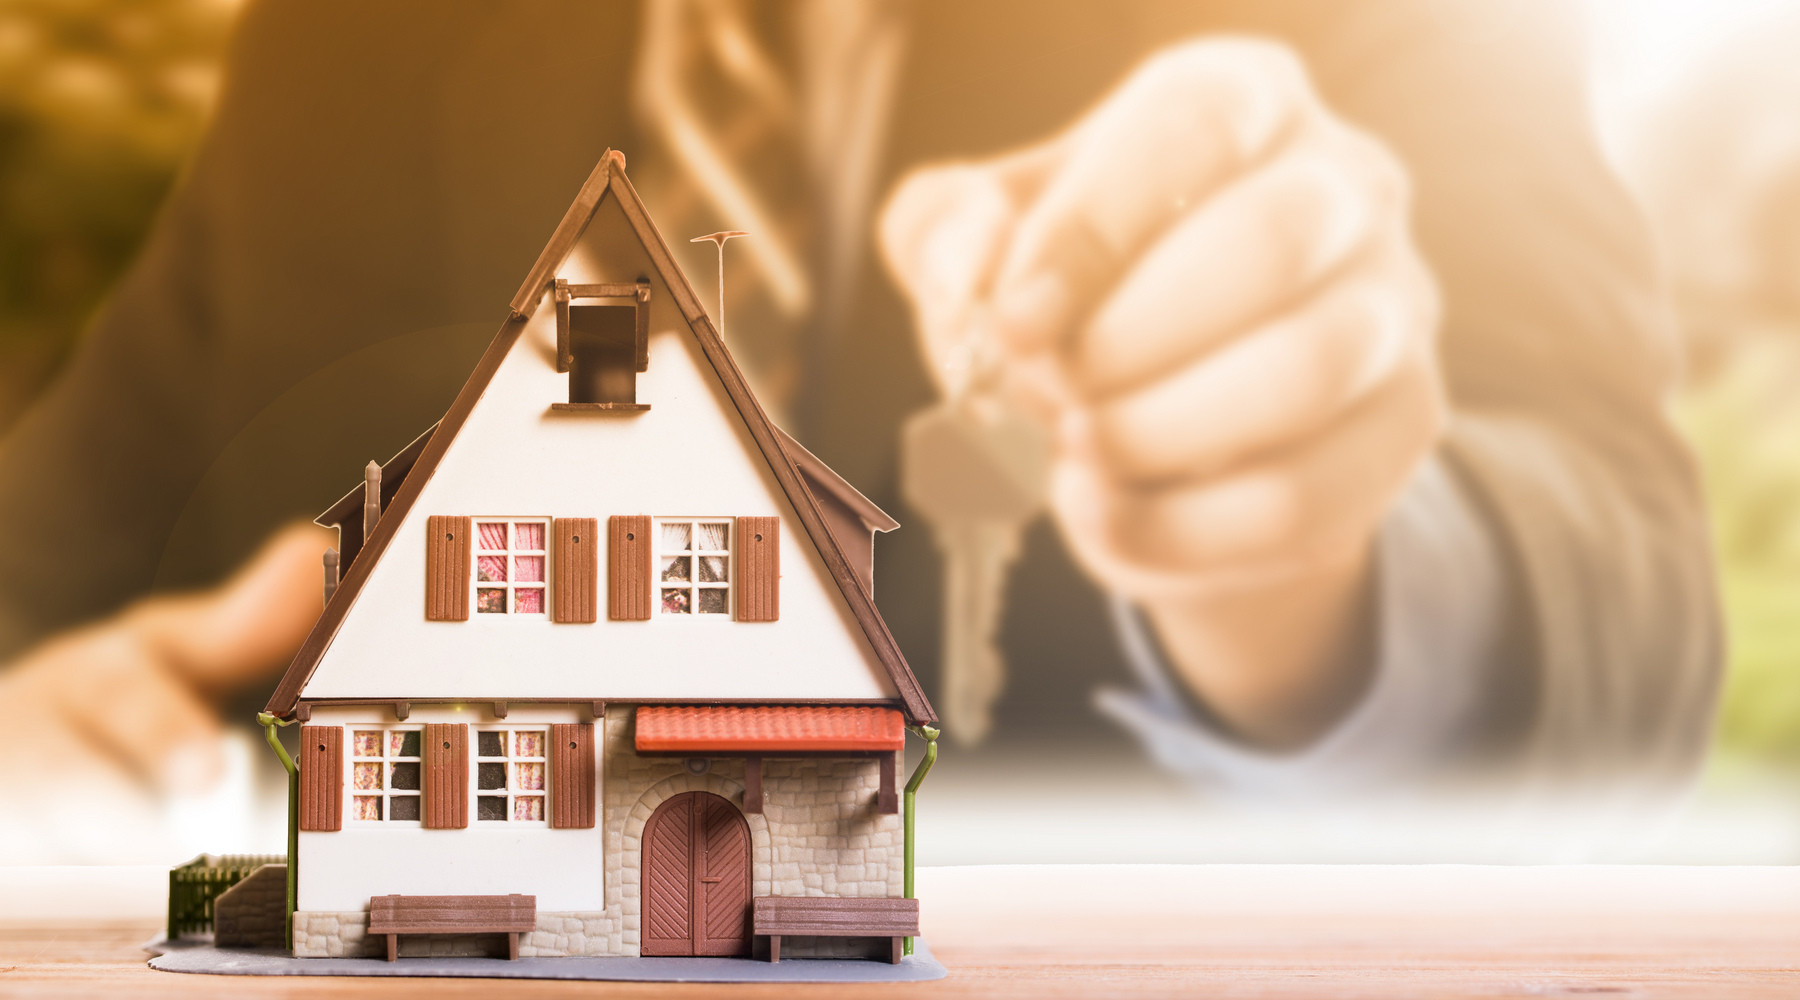 How Will Borrowers of Large Mortgages Cope If Interest Rates Rise?